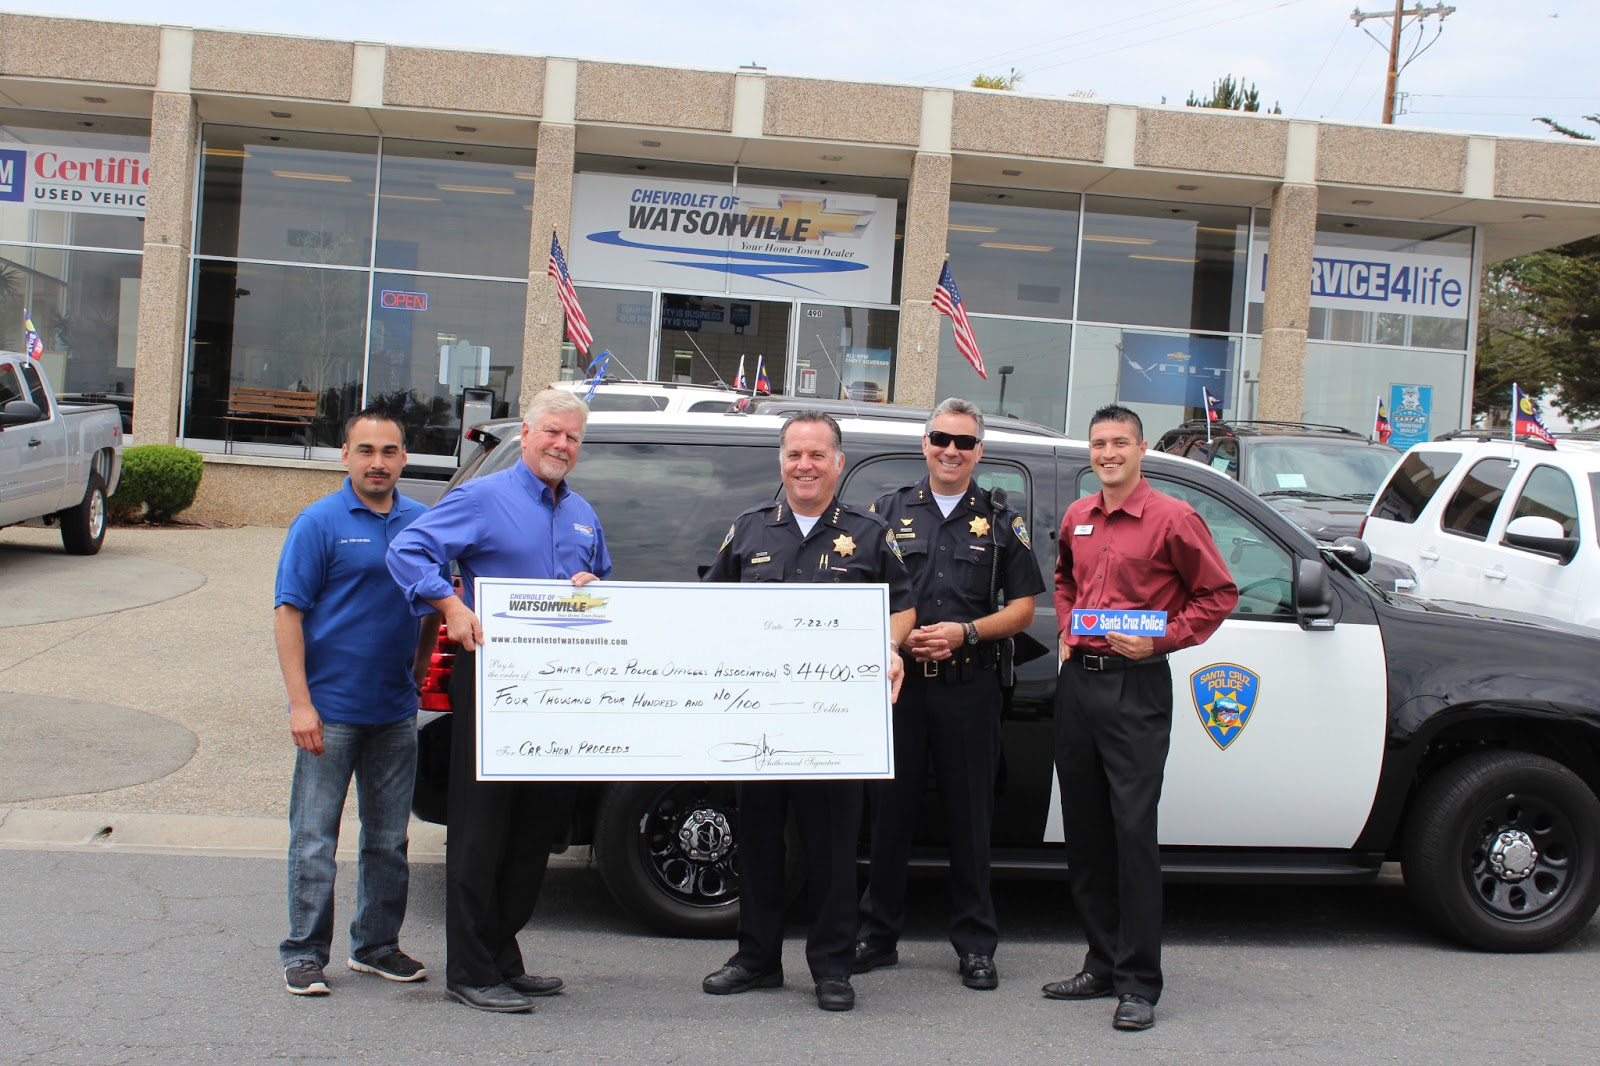 Santa Cruz Police: Chevrolet of Watsonville Car Show Nets $4,400 for